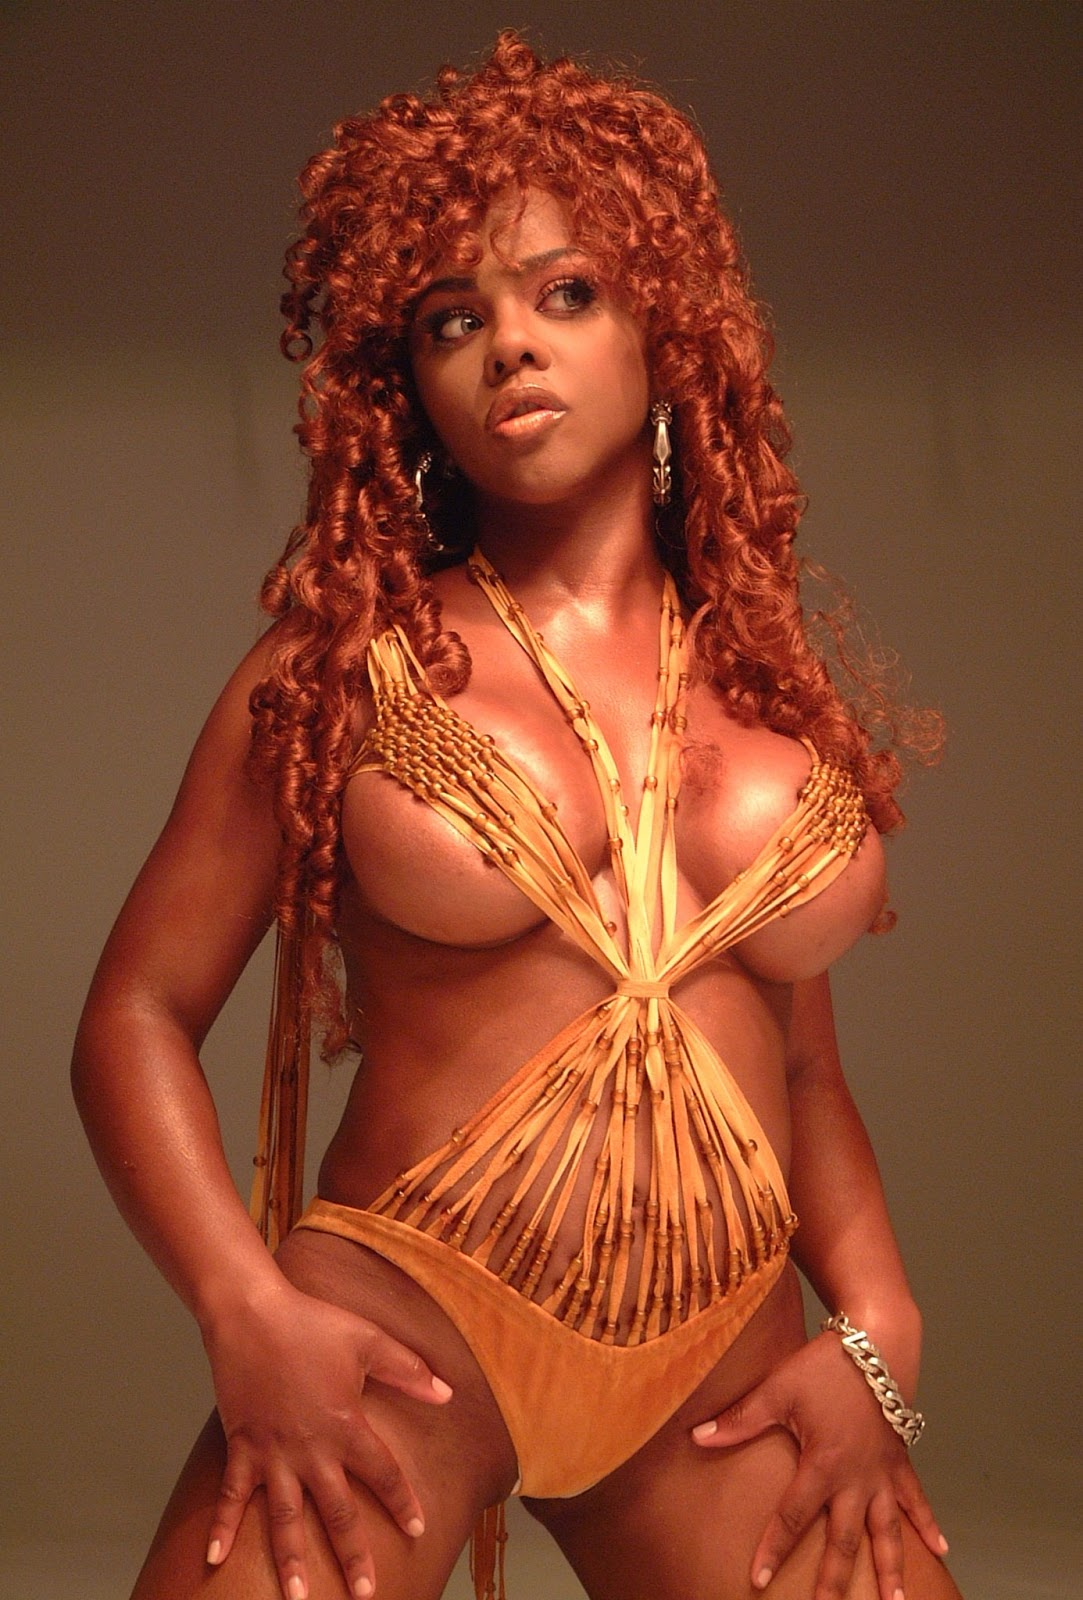 lil-kim-nude-poster-words-with-pussy-in-them